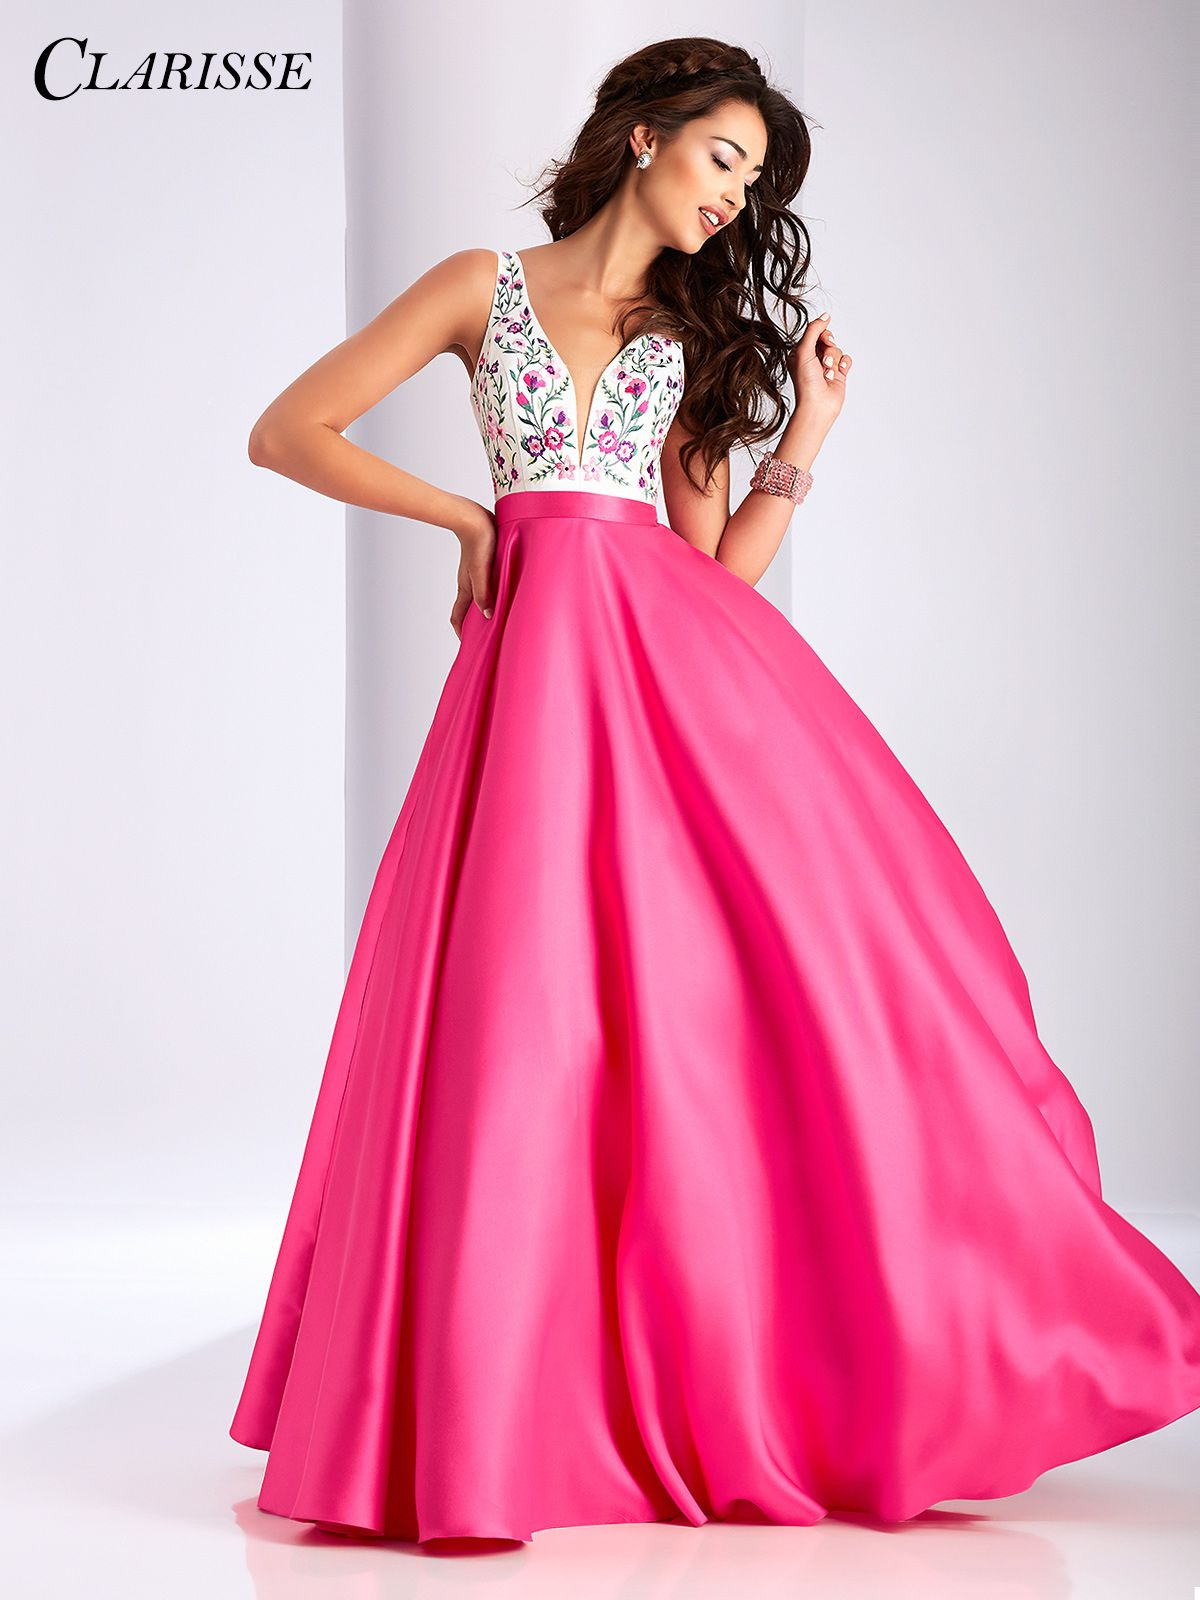 Hot pink homecoming dress  Clarisse Prom Dress  Floral embroidered ballgown with pockets